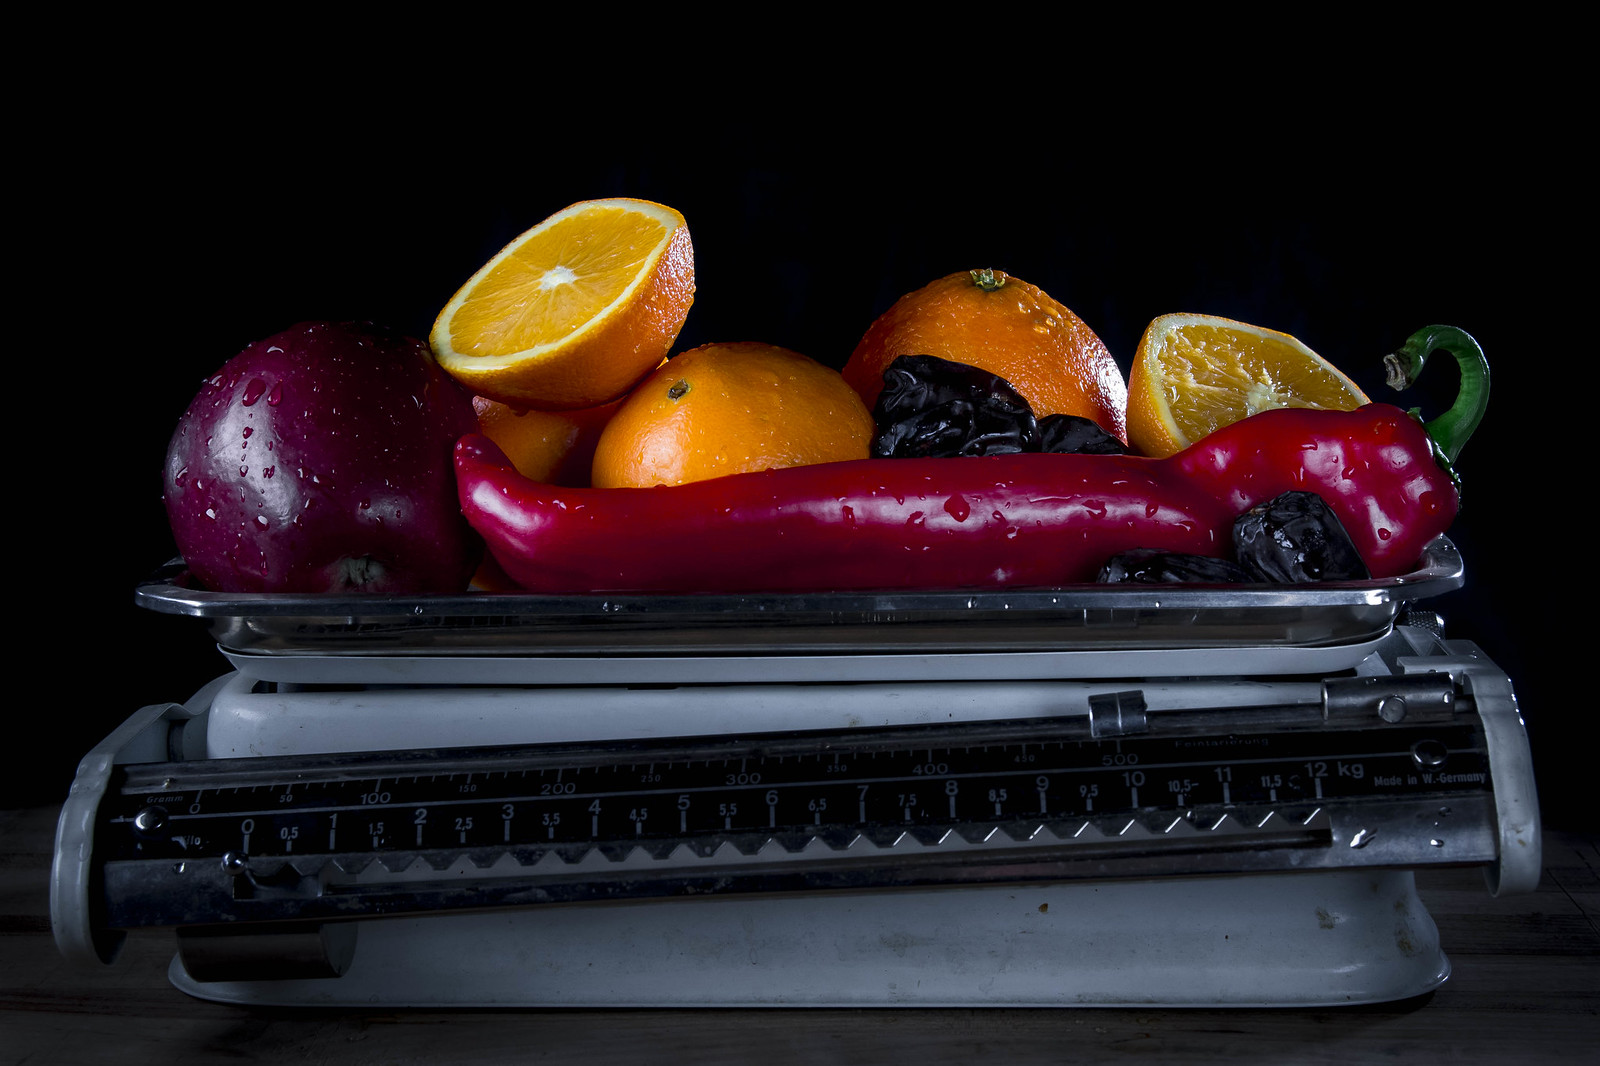 Vegetables / Food photography